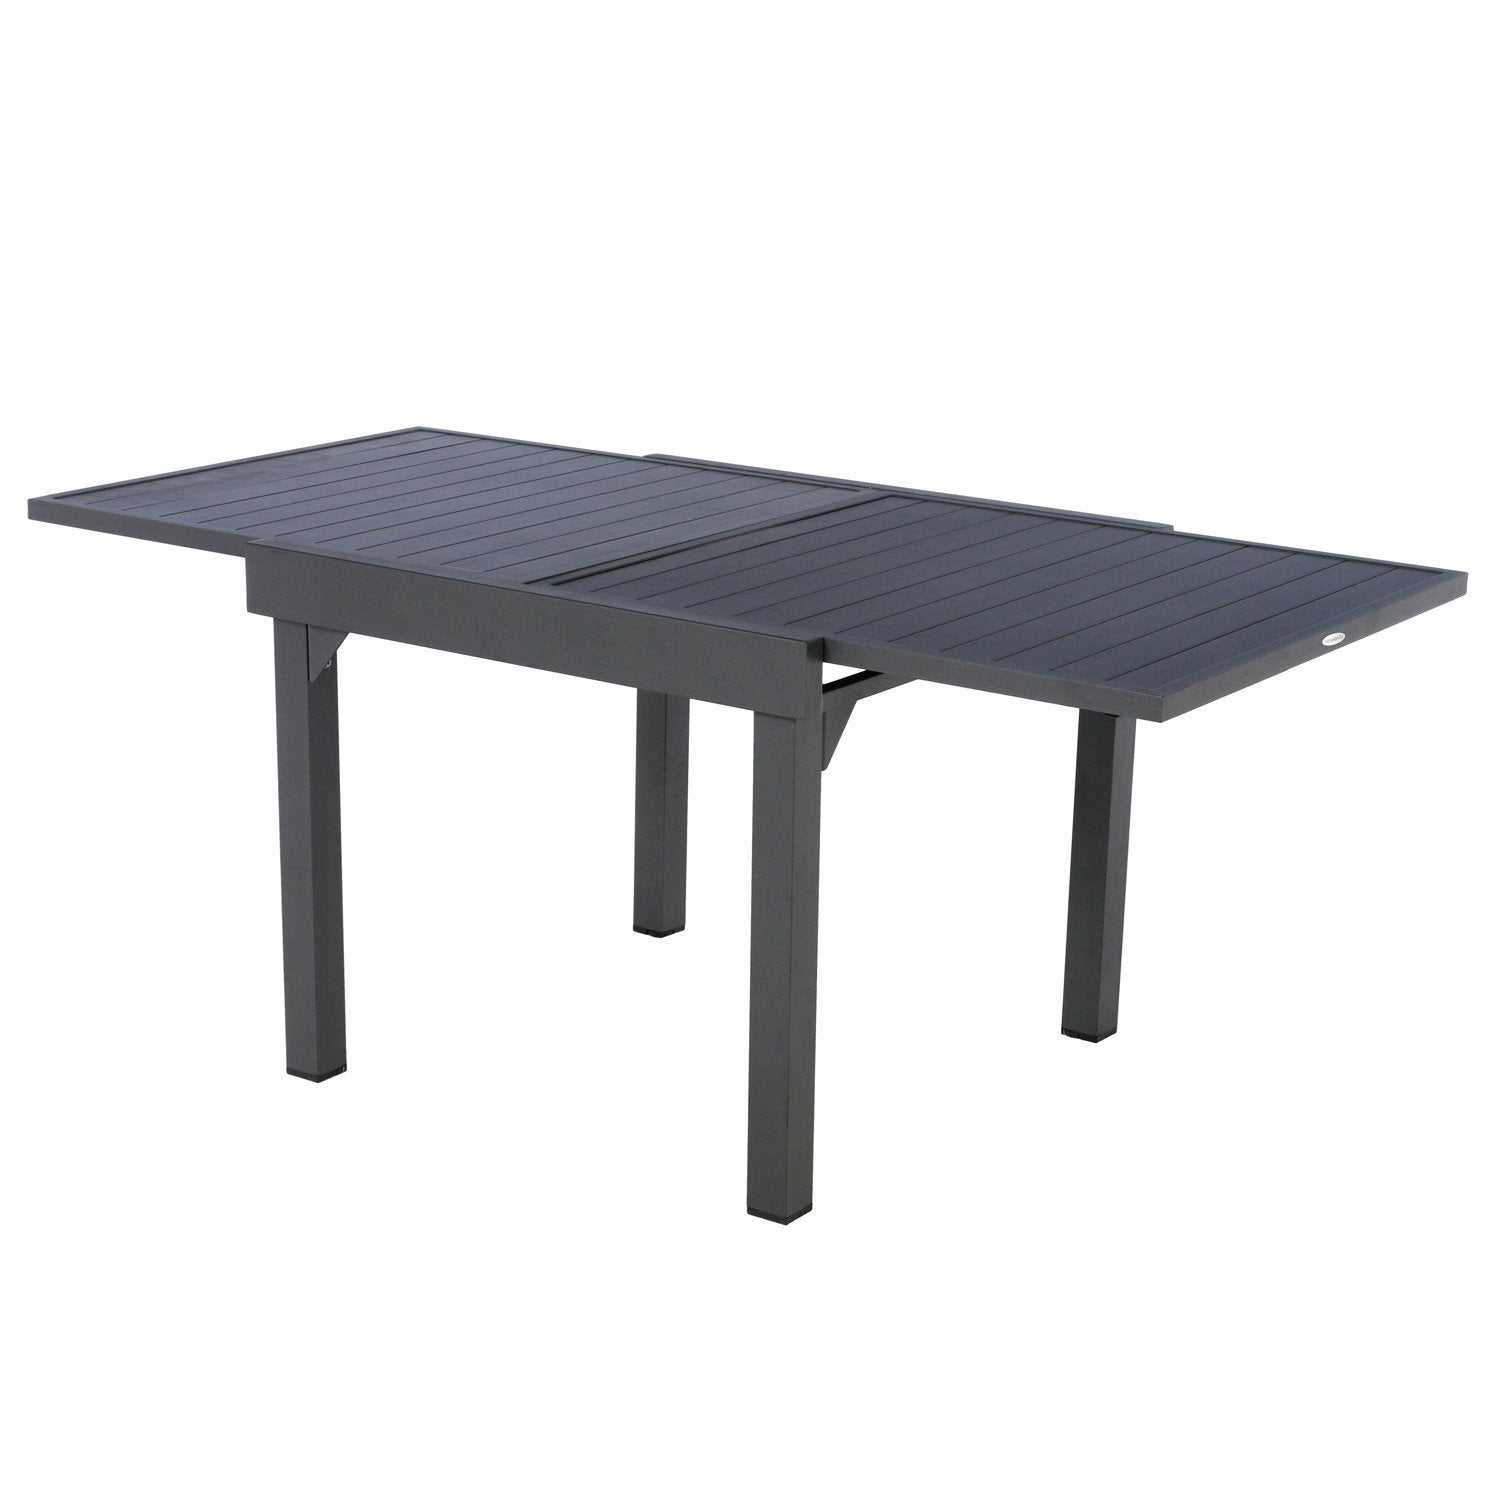 table de jardin hesperide piazza rectangulaire gris 8 personnes leroy merlin. Black Bedroom Furniture Sets. Home Design Ideas